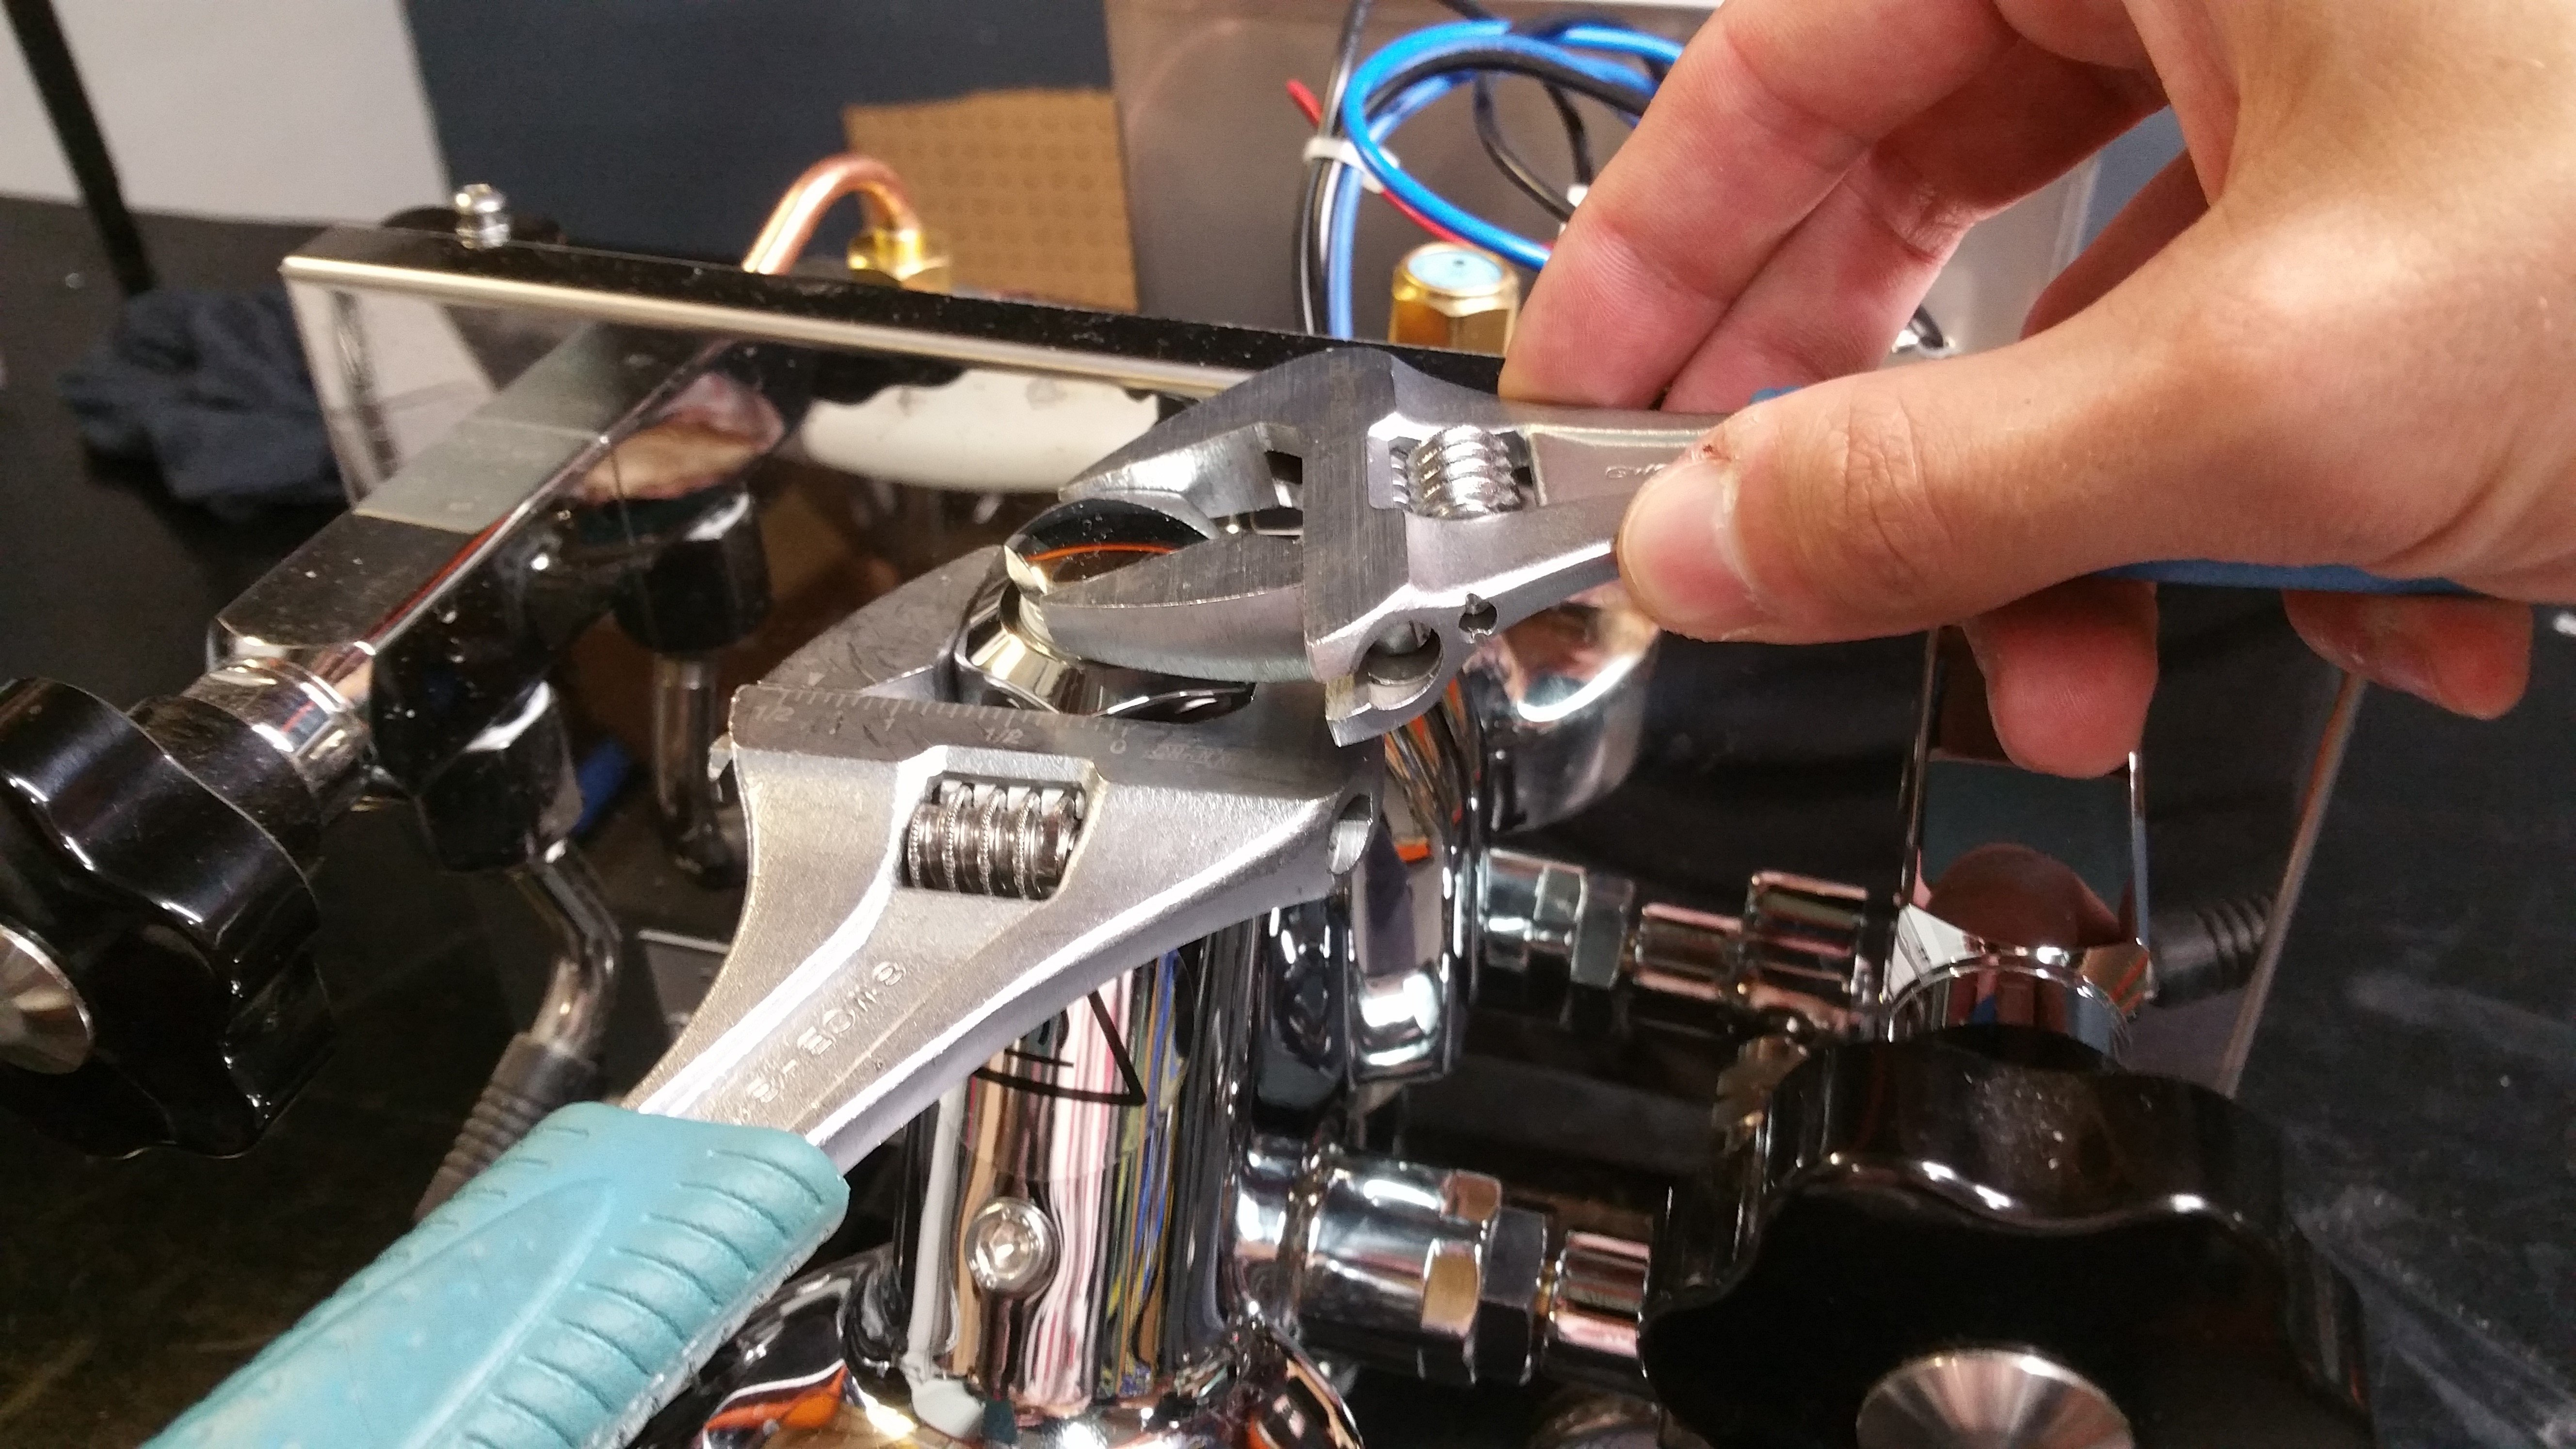 Profitec Pro 500: Water Not Coming Out of Grouphead